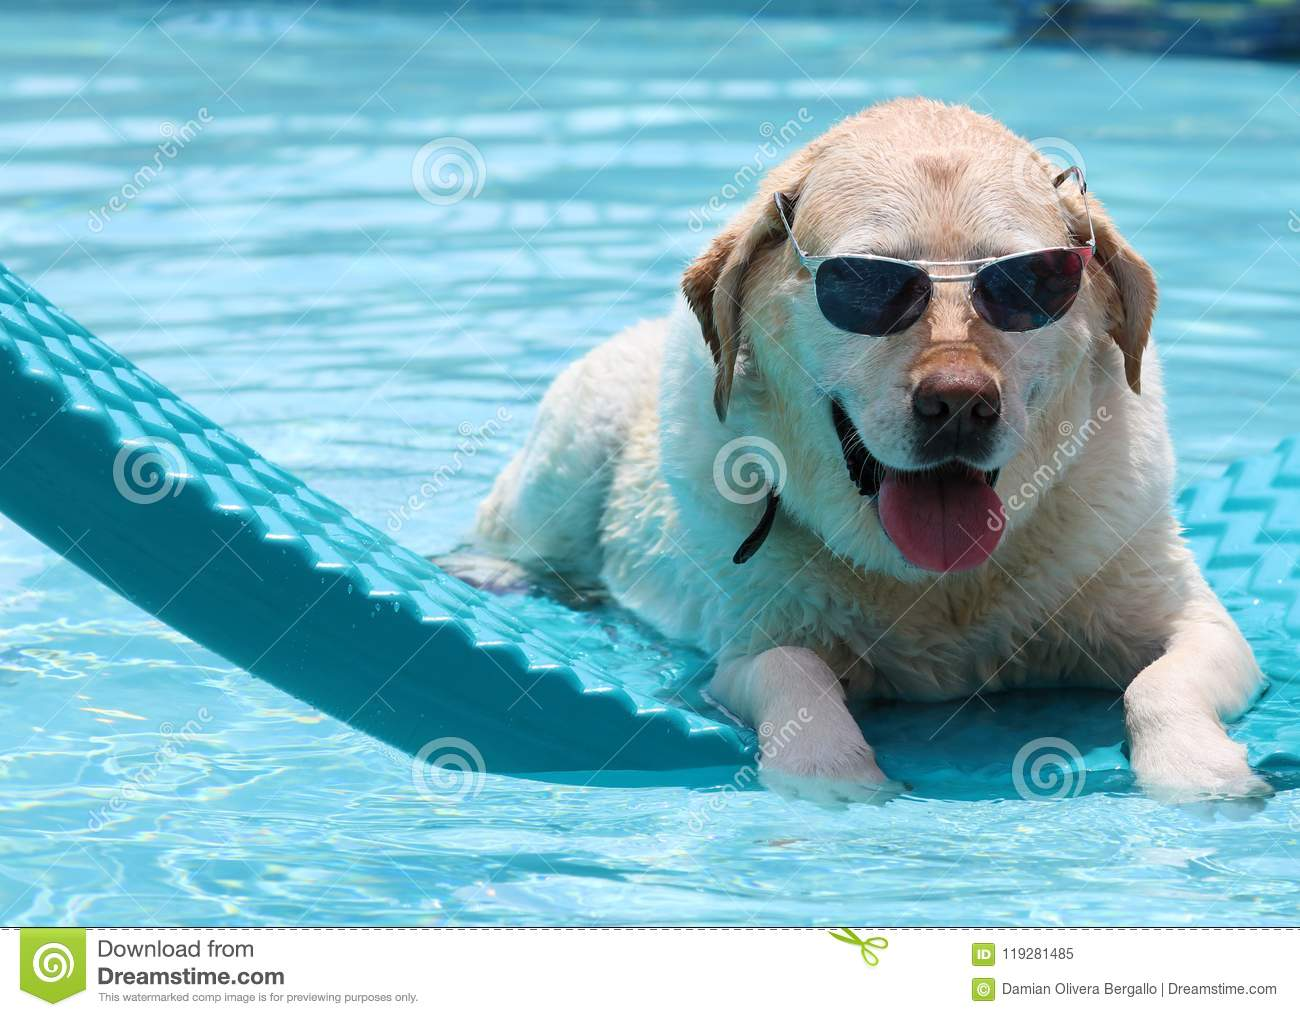 Beautiful unique golden retriever labrador dog relaxing at the pool in a floating bed, dog with glasses super funny.